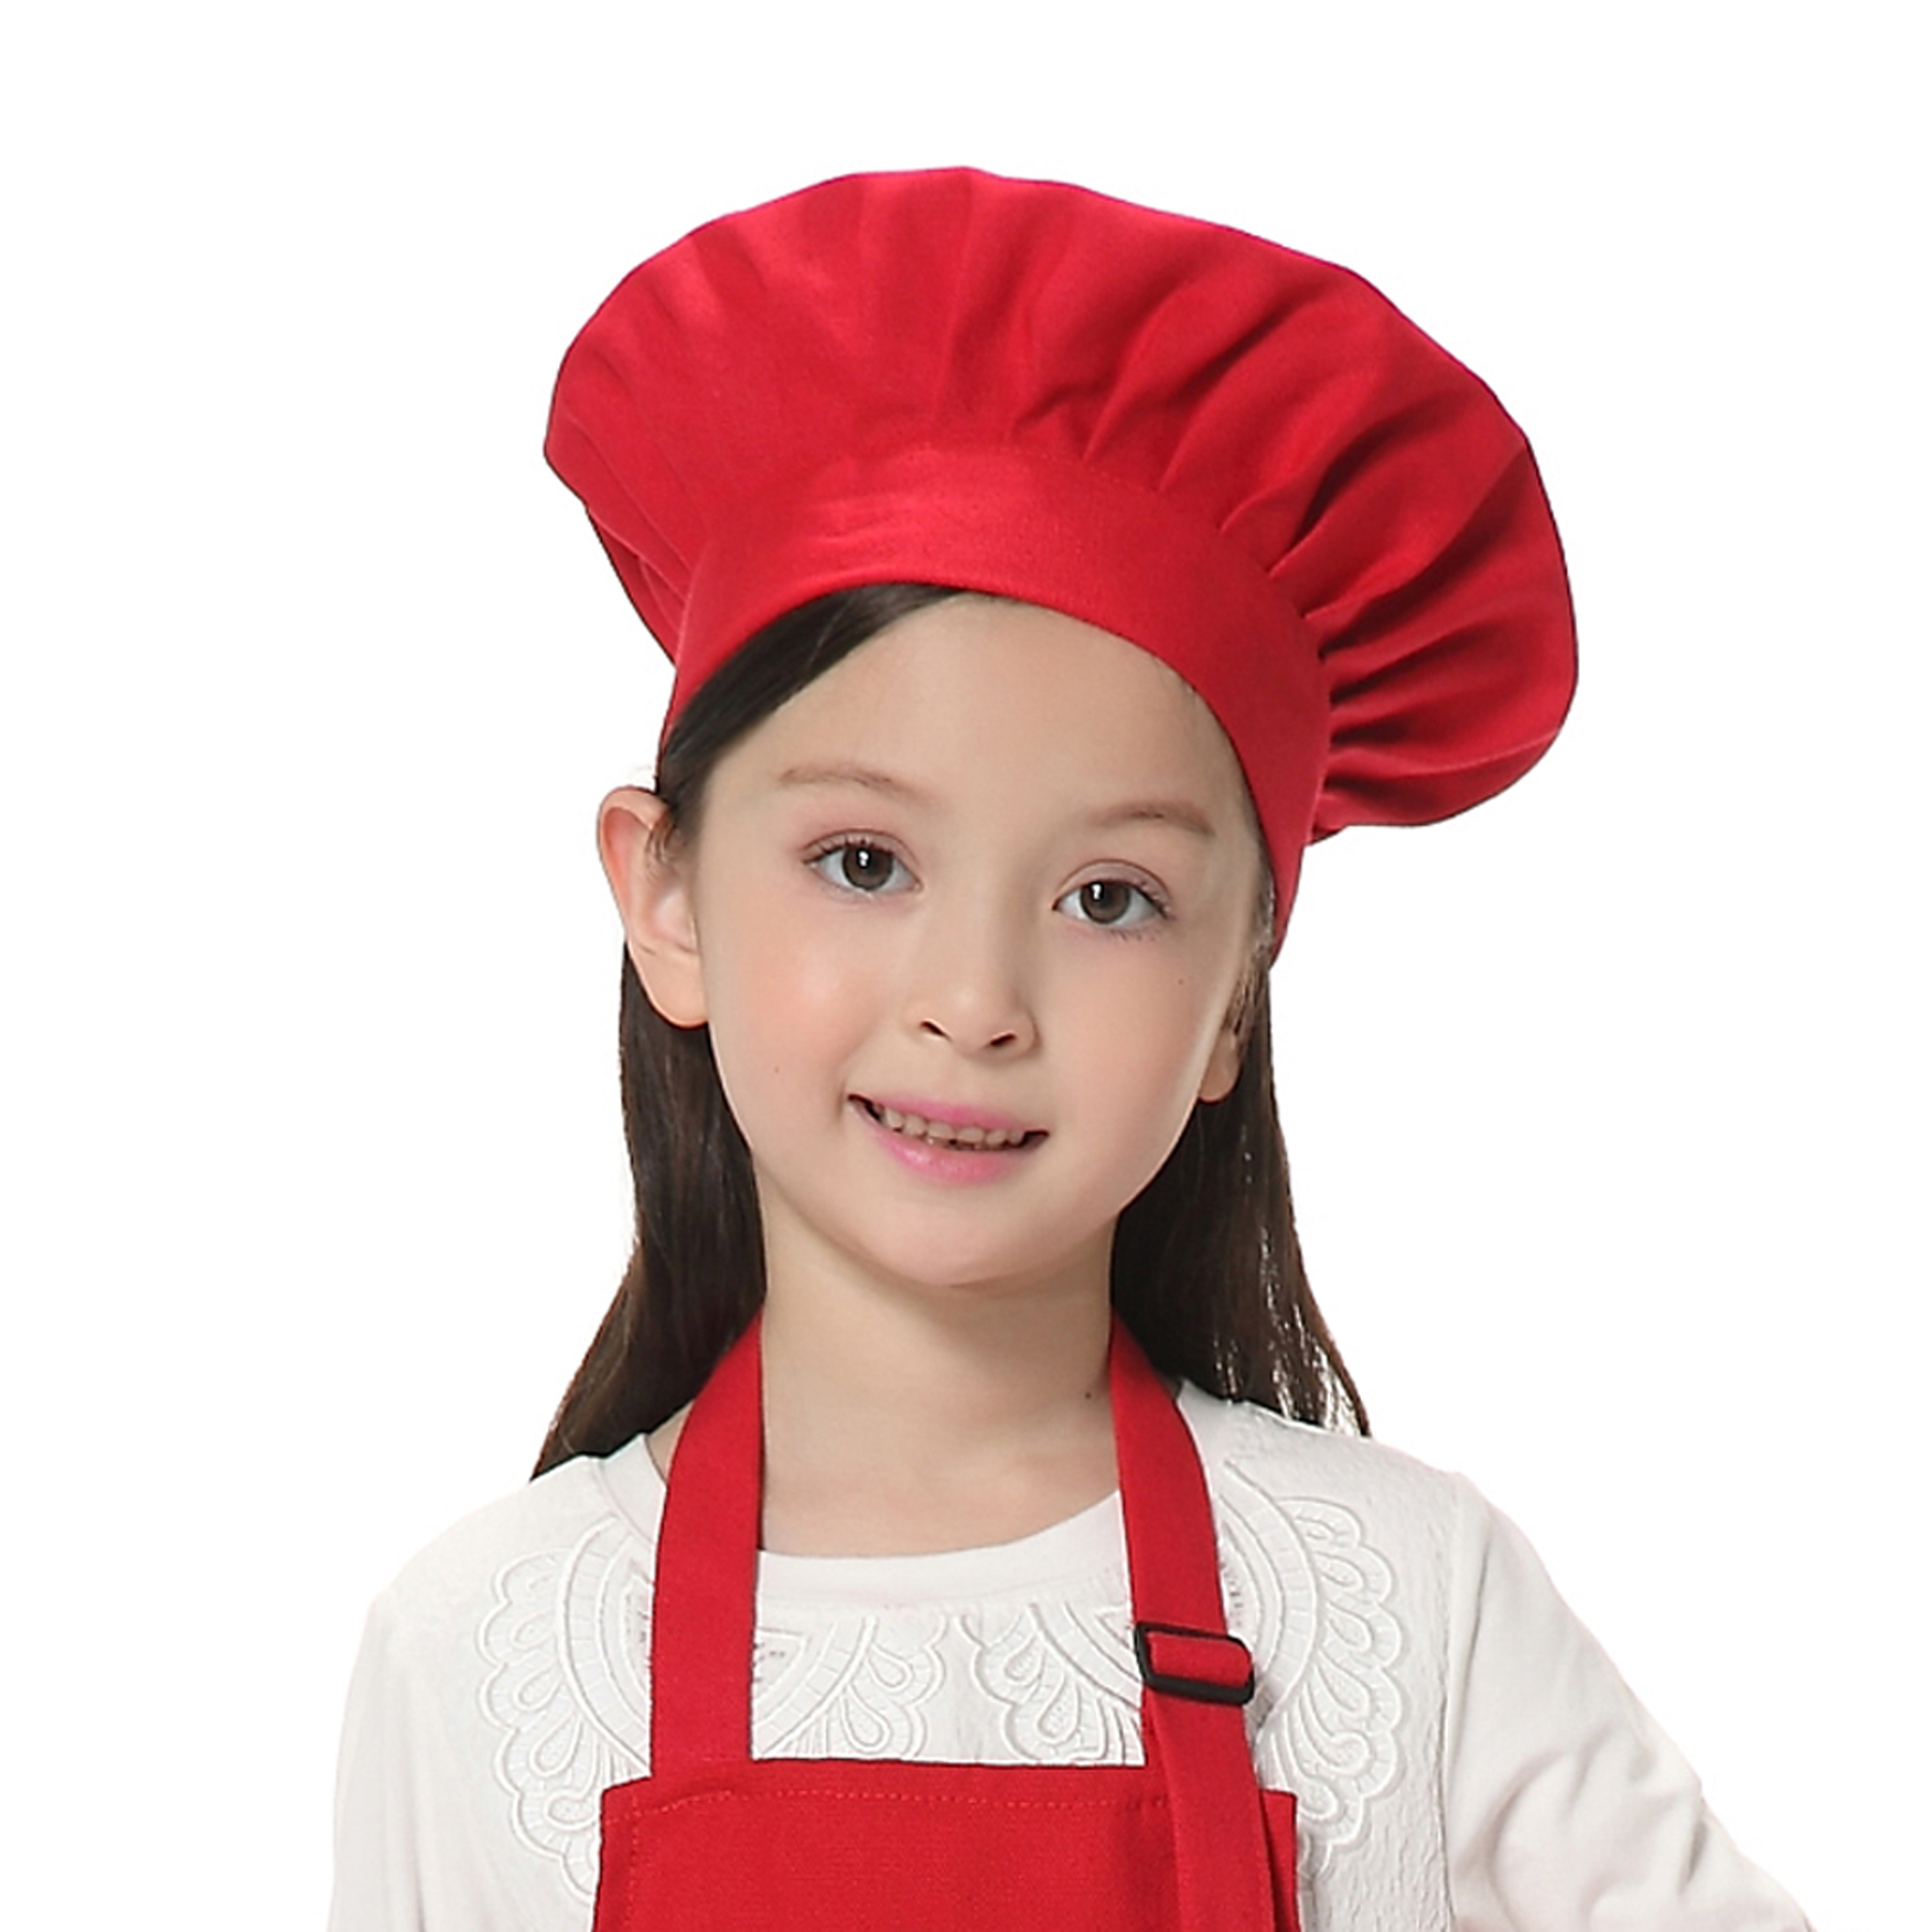 Opromo Child's Chef Hat Kid's Baker Costume Cotton Canvas Mushroom Hat